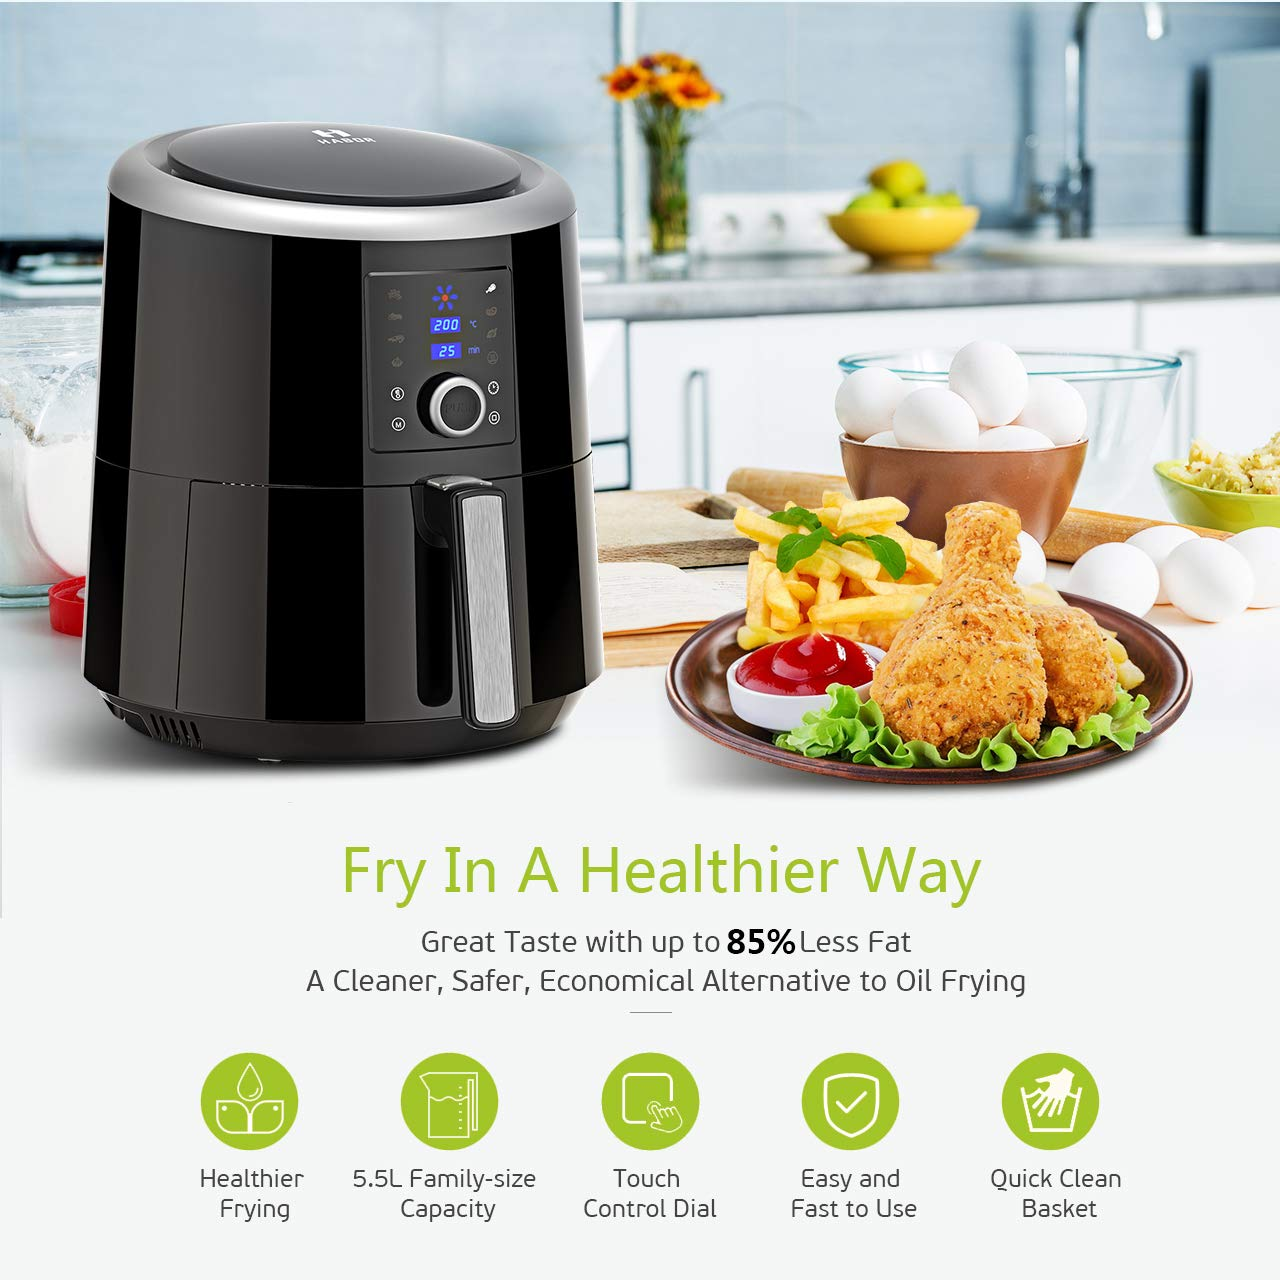 Habor 5.5L Air Fryer,1800W Digital Air Fryer 7-in-1 Oil Free Healthy Fryer